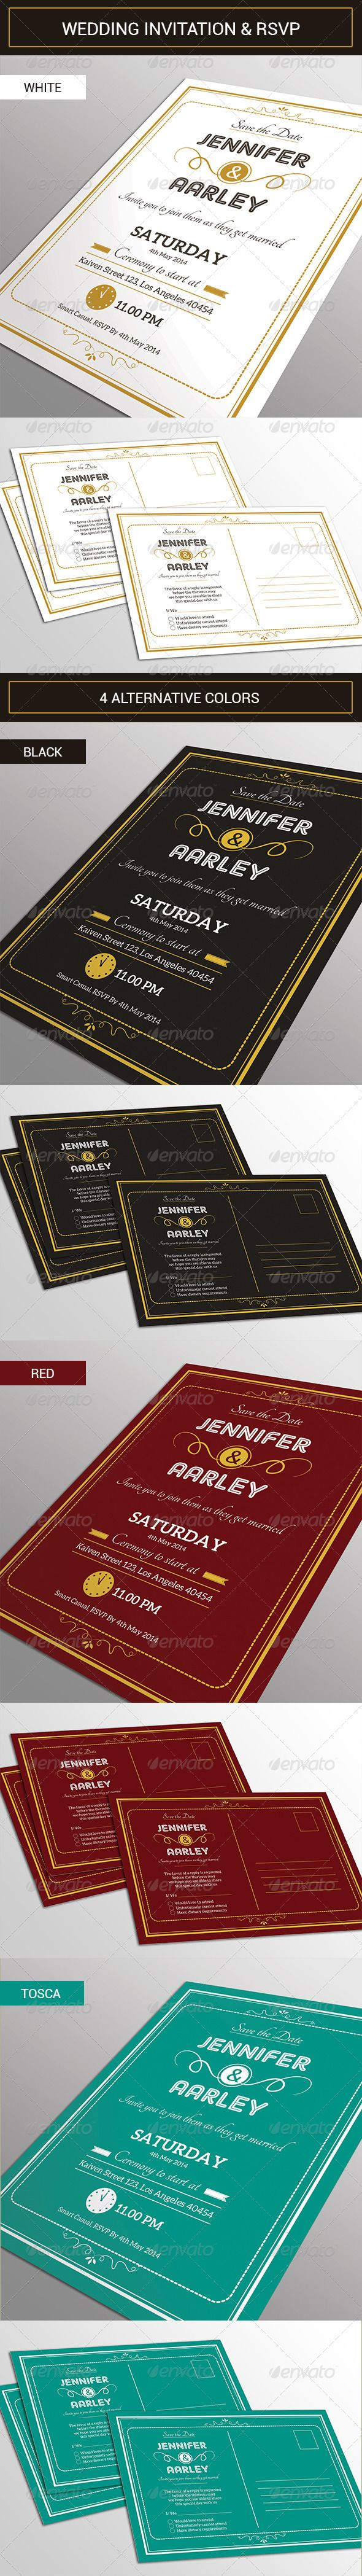 Elegant Wedding Invitation & RSVP – Wedding Card and Invitation